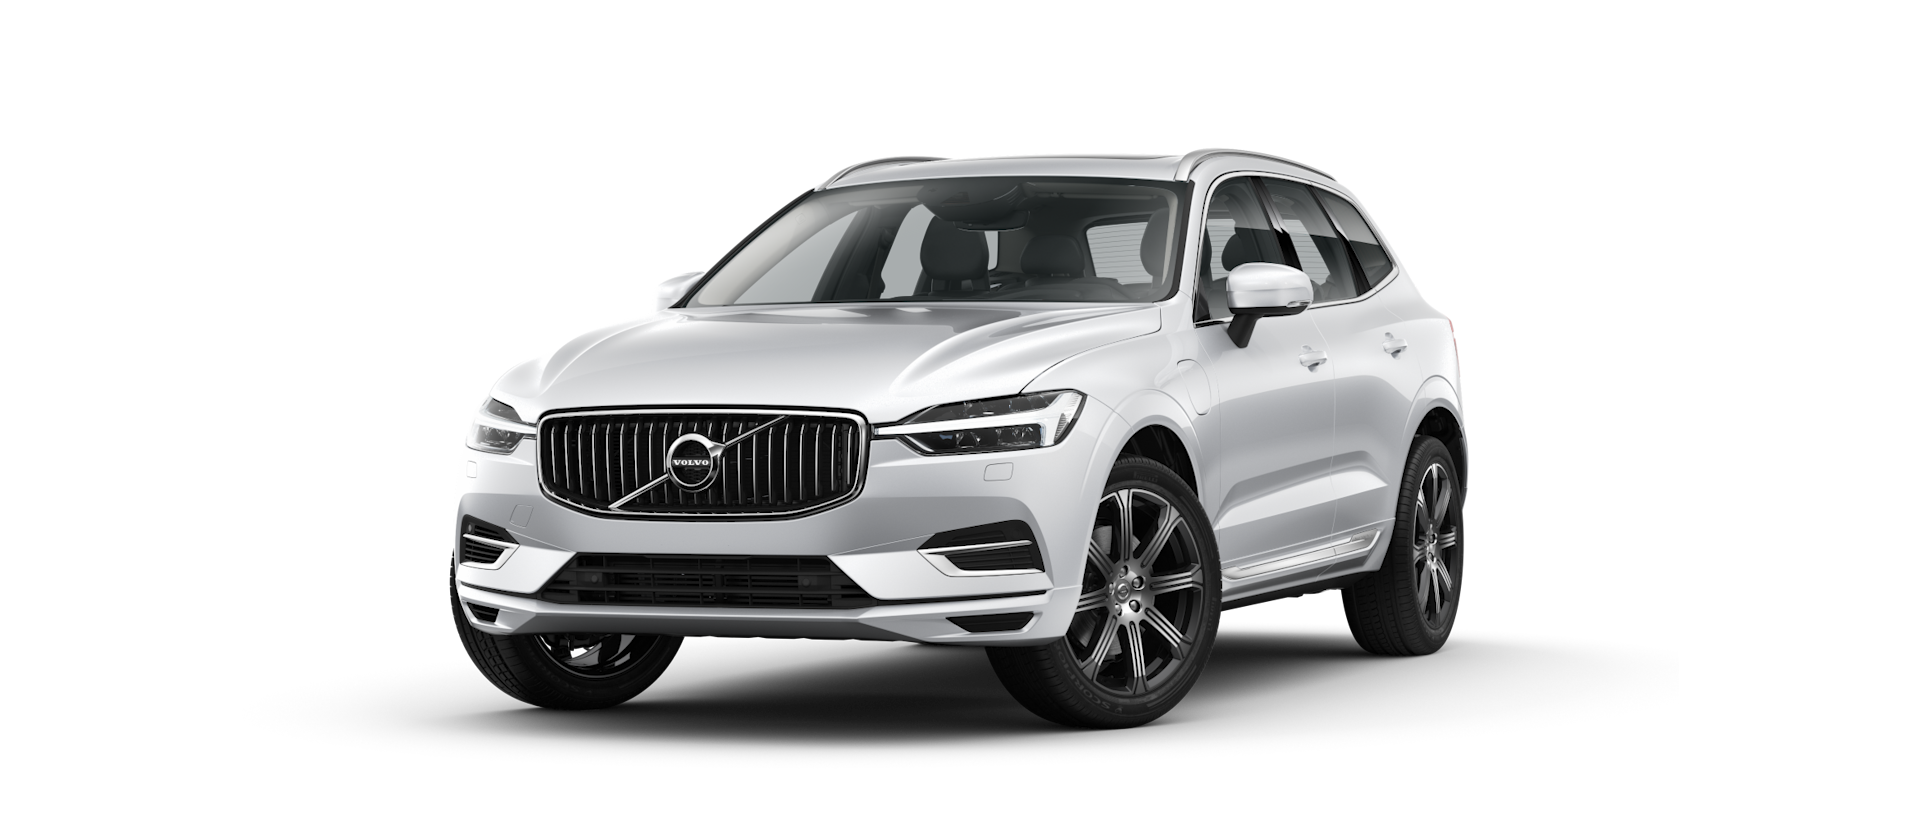 front side view of XC60 mild hybrid